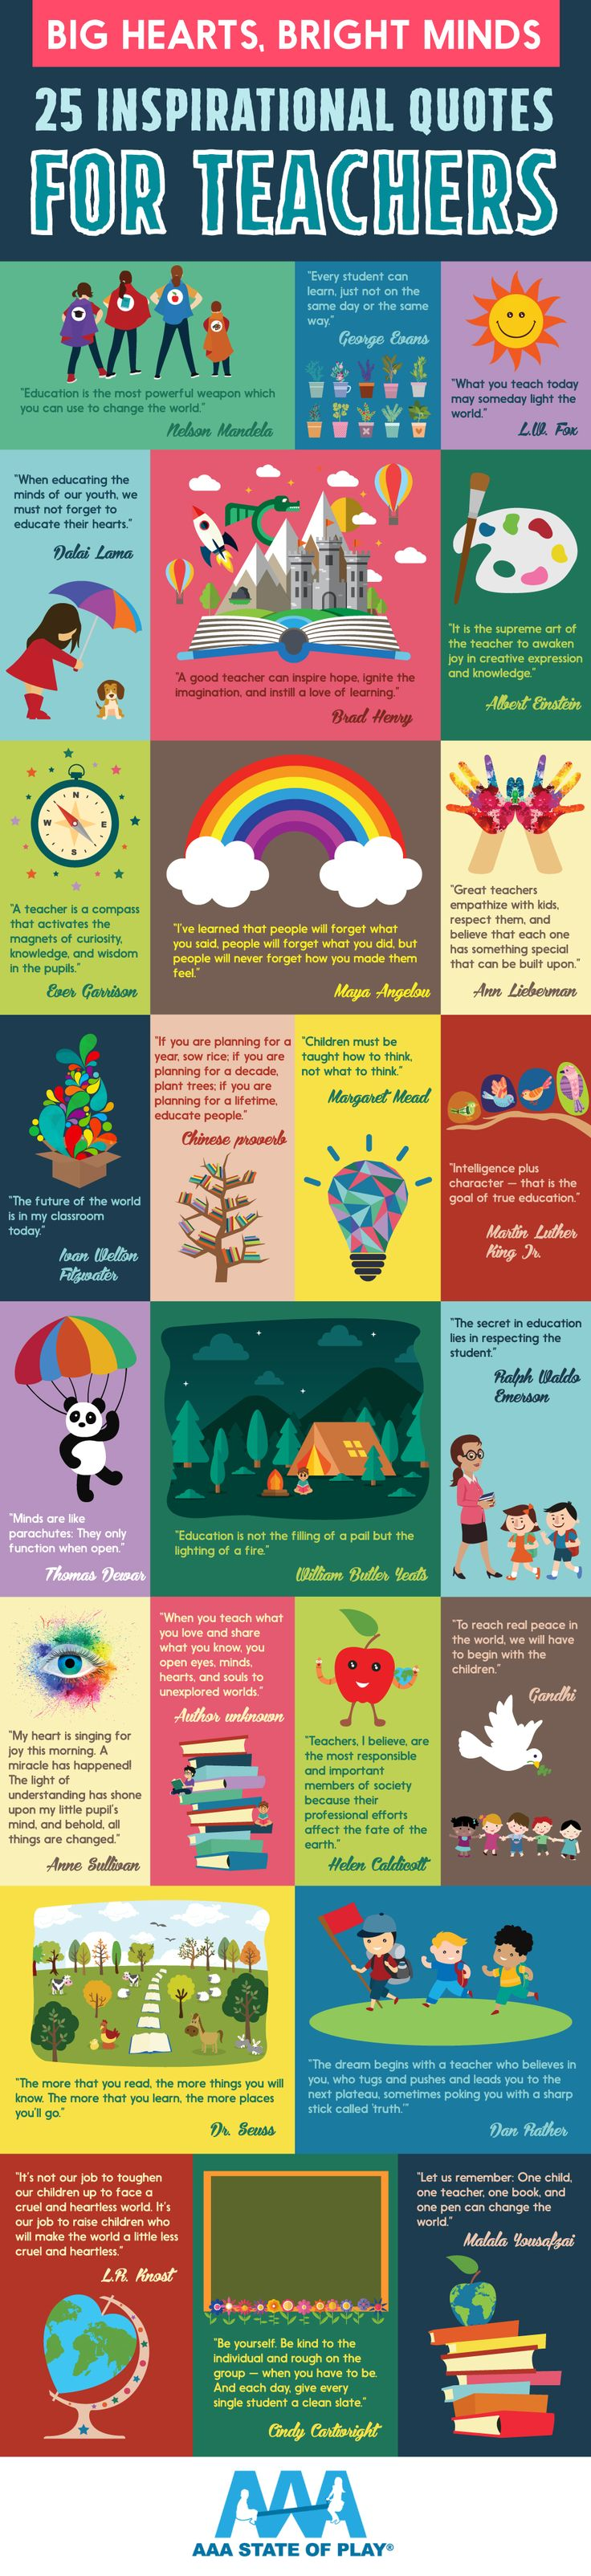 Educational Quotes For Teachers Motivation Gift Ideas